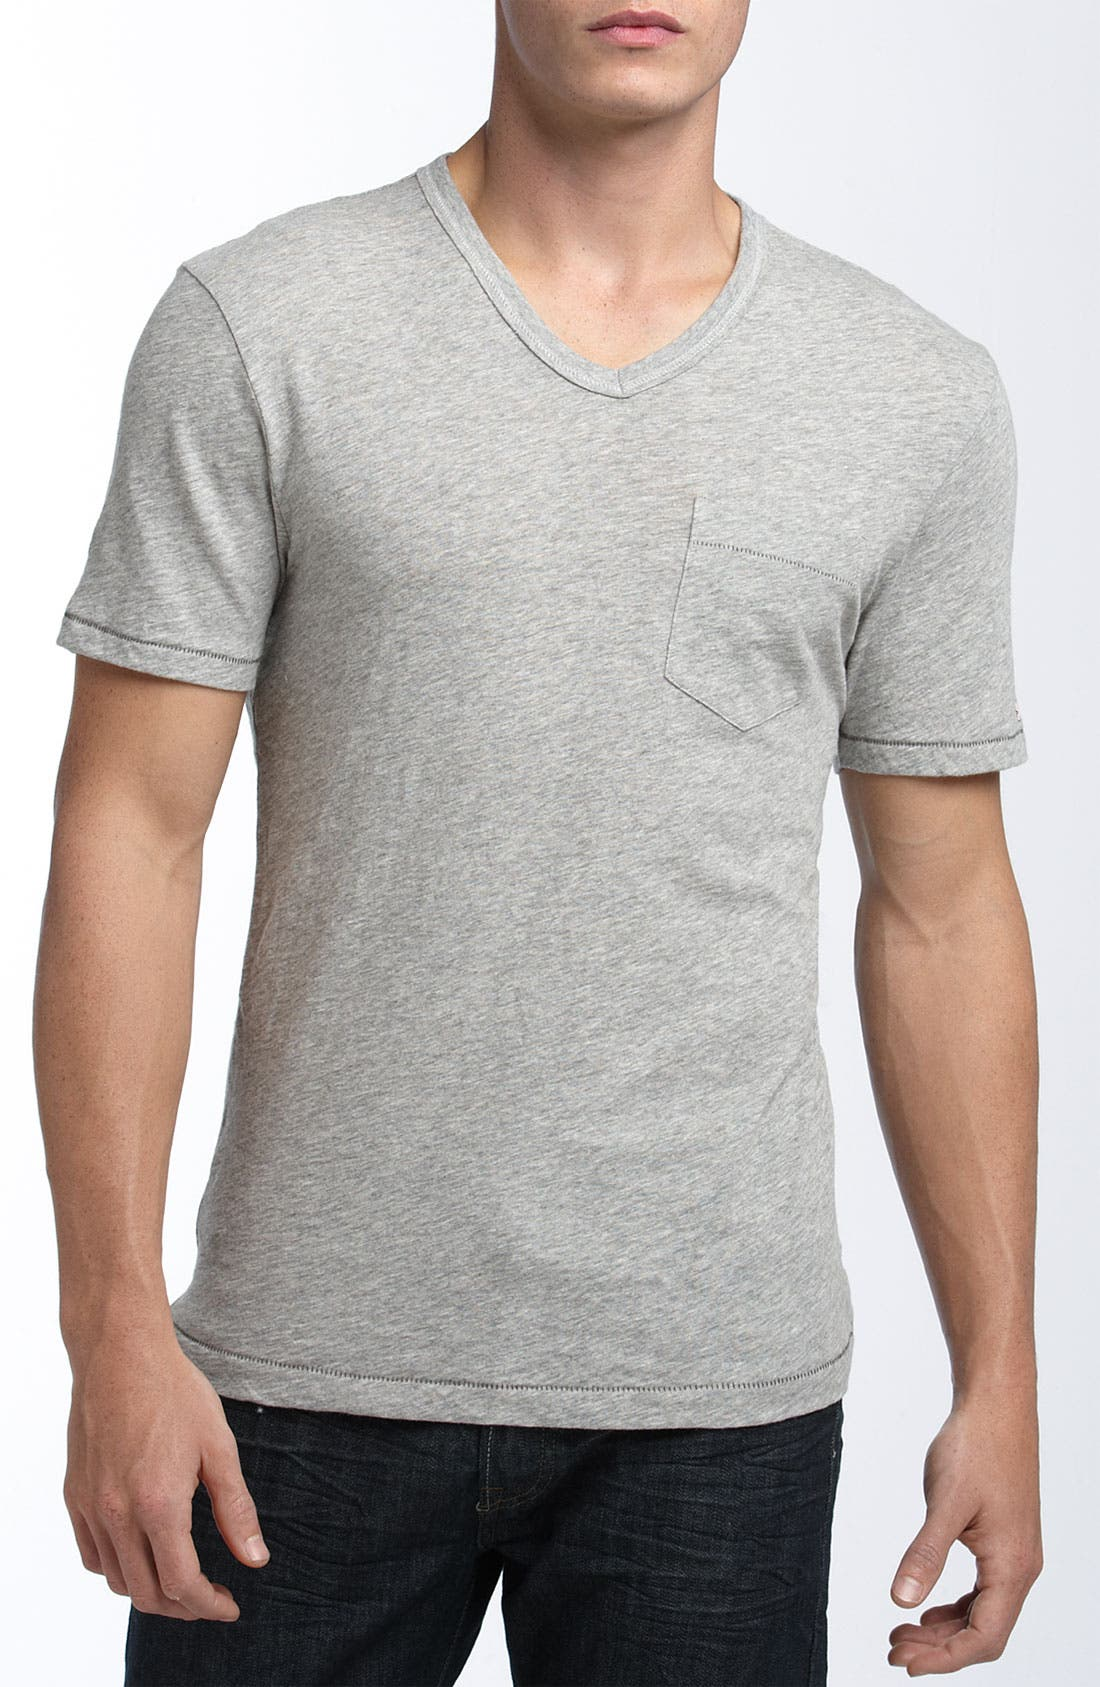 Main Image - Original Penguin Trim Fit Heathered V-Neck T-Shirt